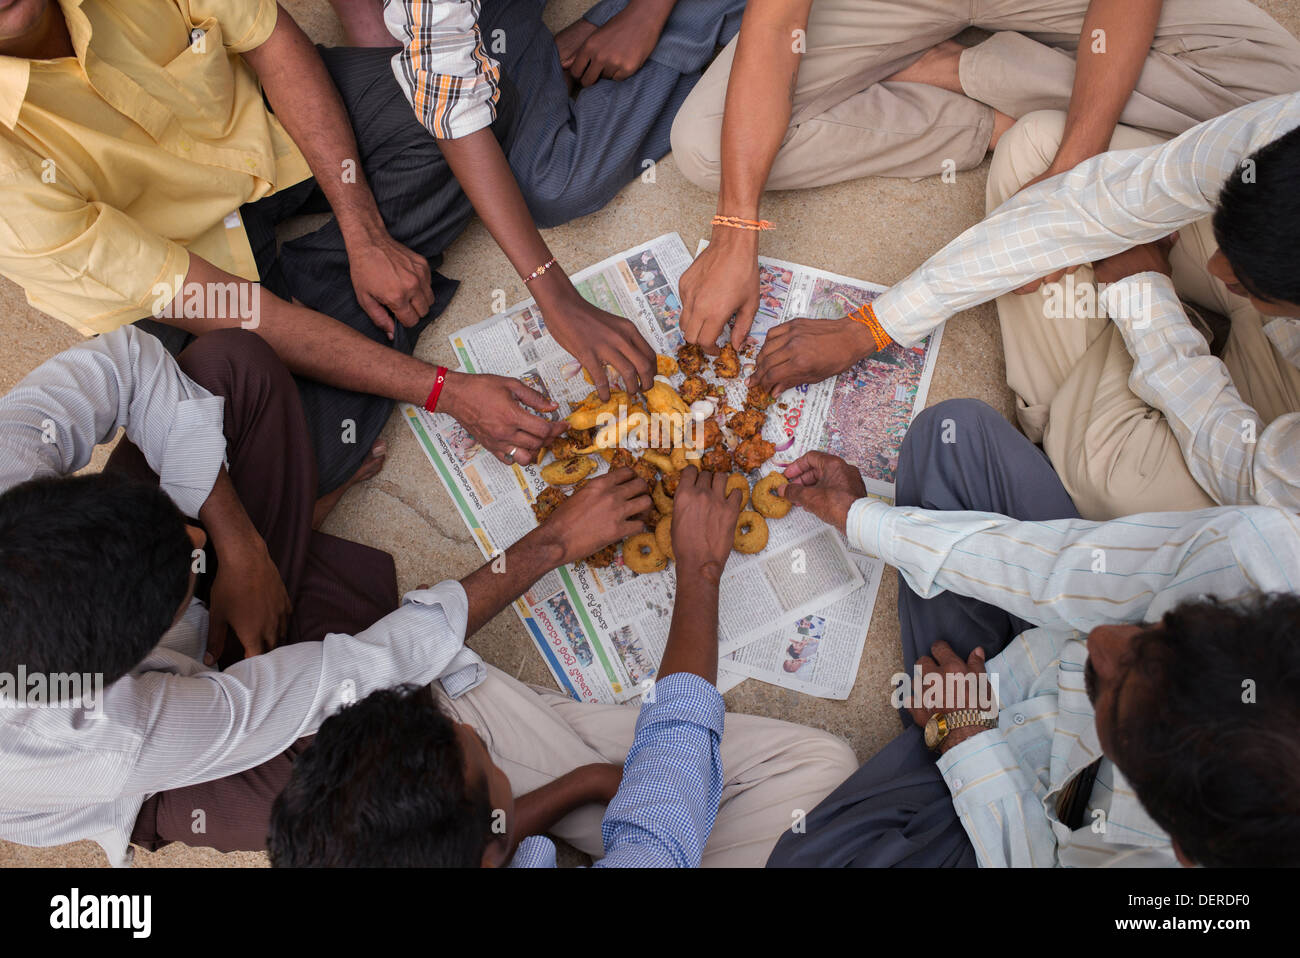 Indian mens right hands picking at Unhealthy deep fried indian street food / fast food. Andhra Pradesh, India - Stock Image